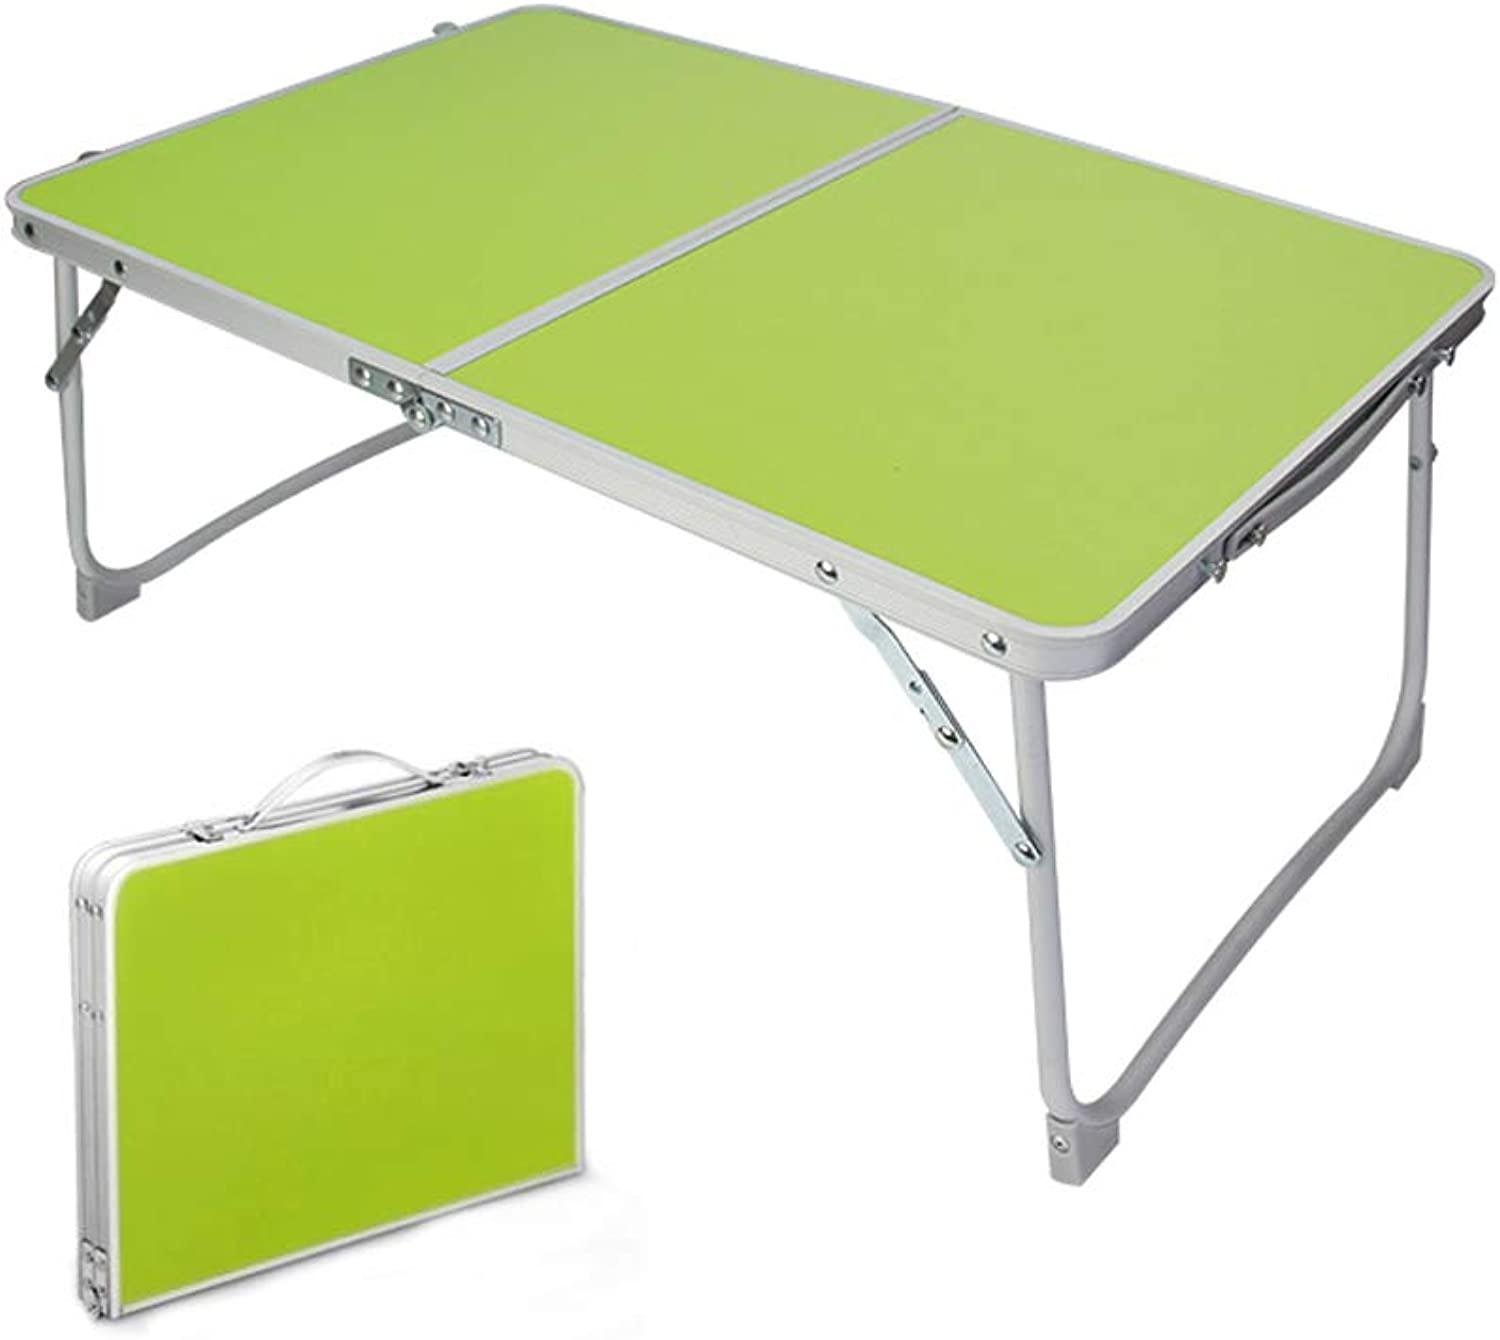 Lyqqqq Table Folding Computer Laptop Desk with Mouse Platform Portable Folding Camping Picnic (color   Green)